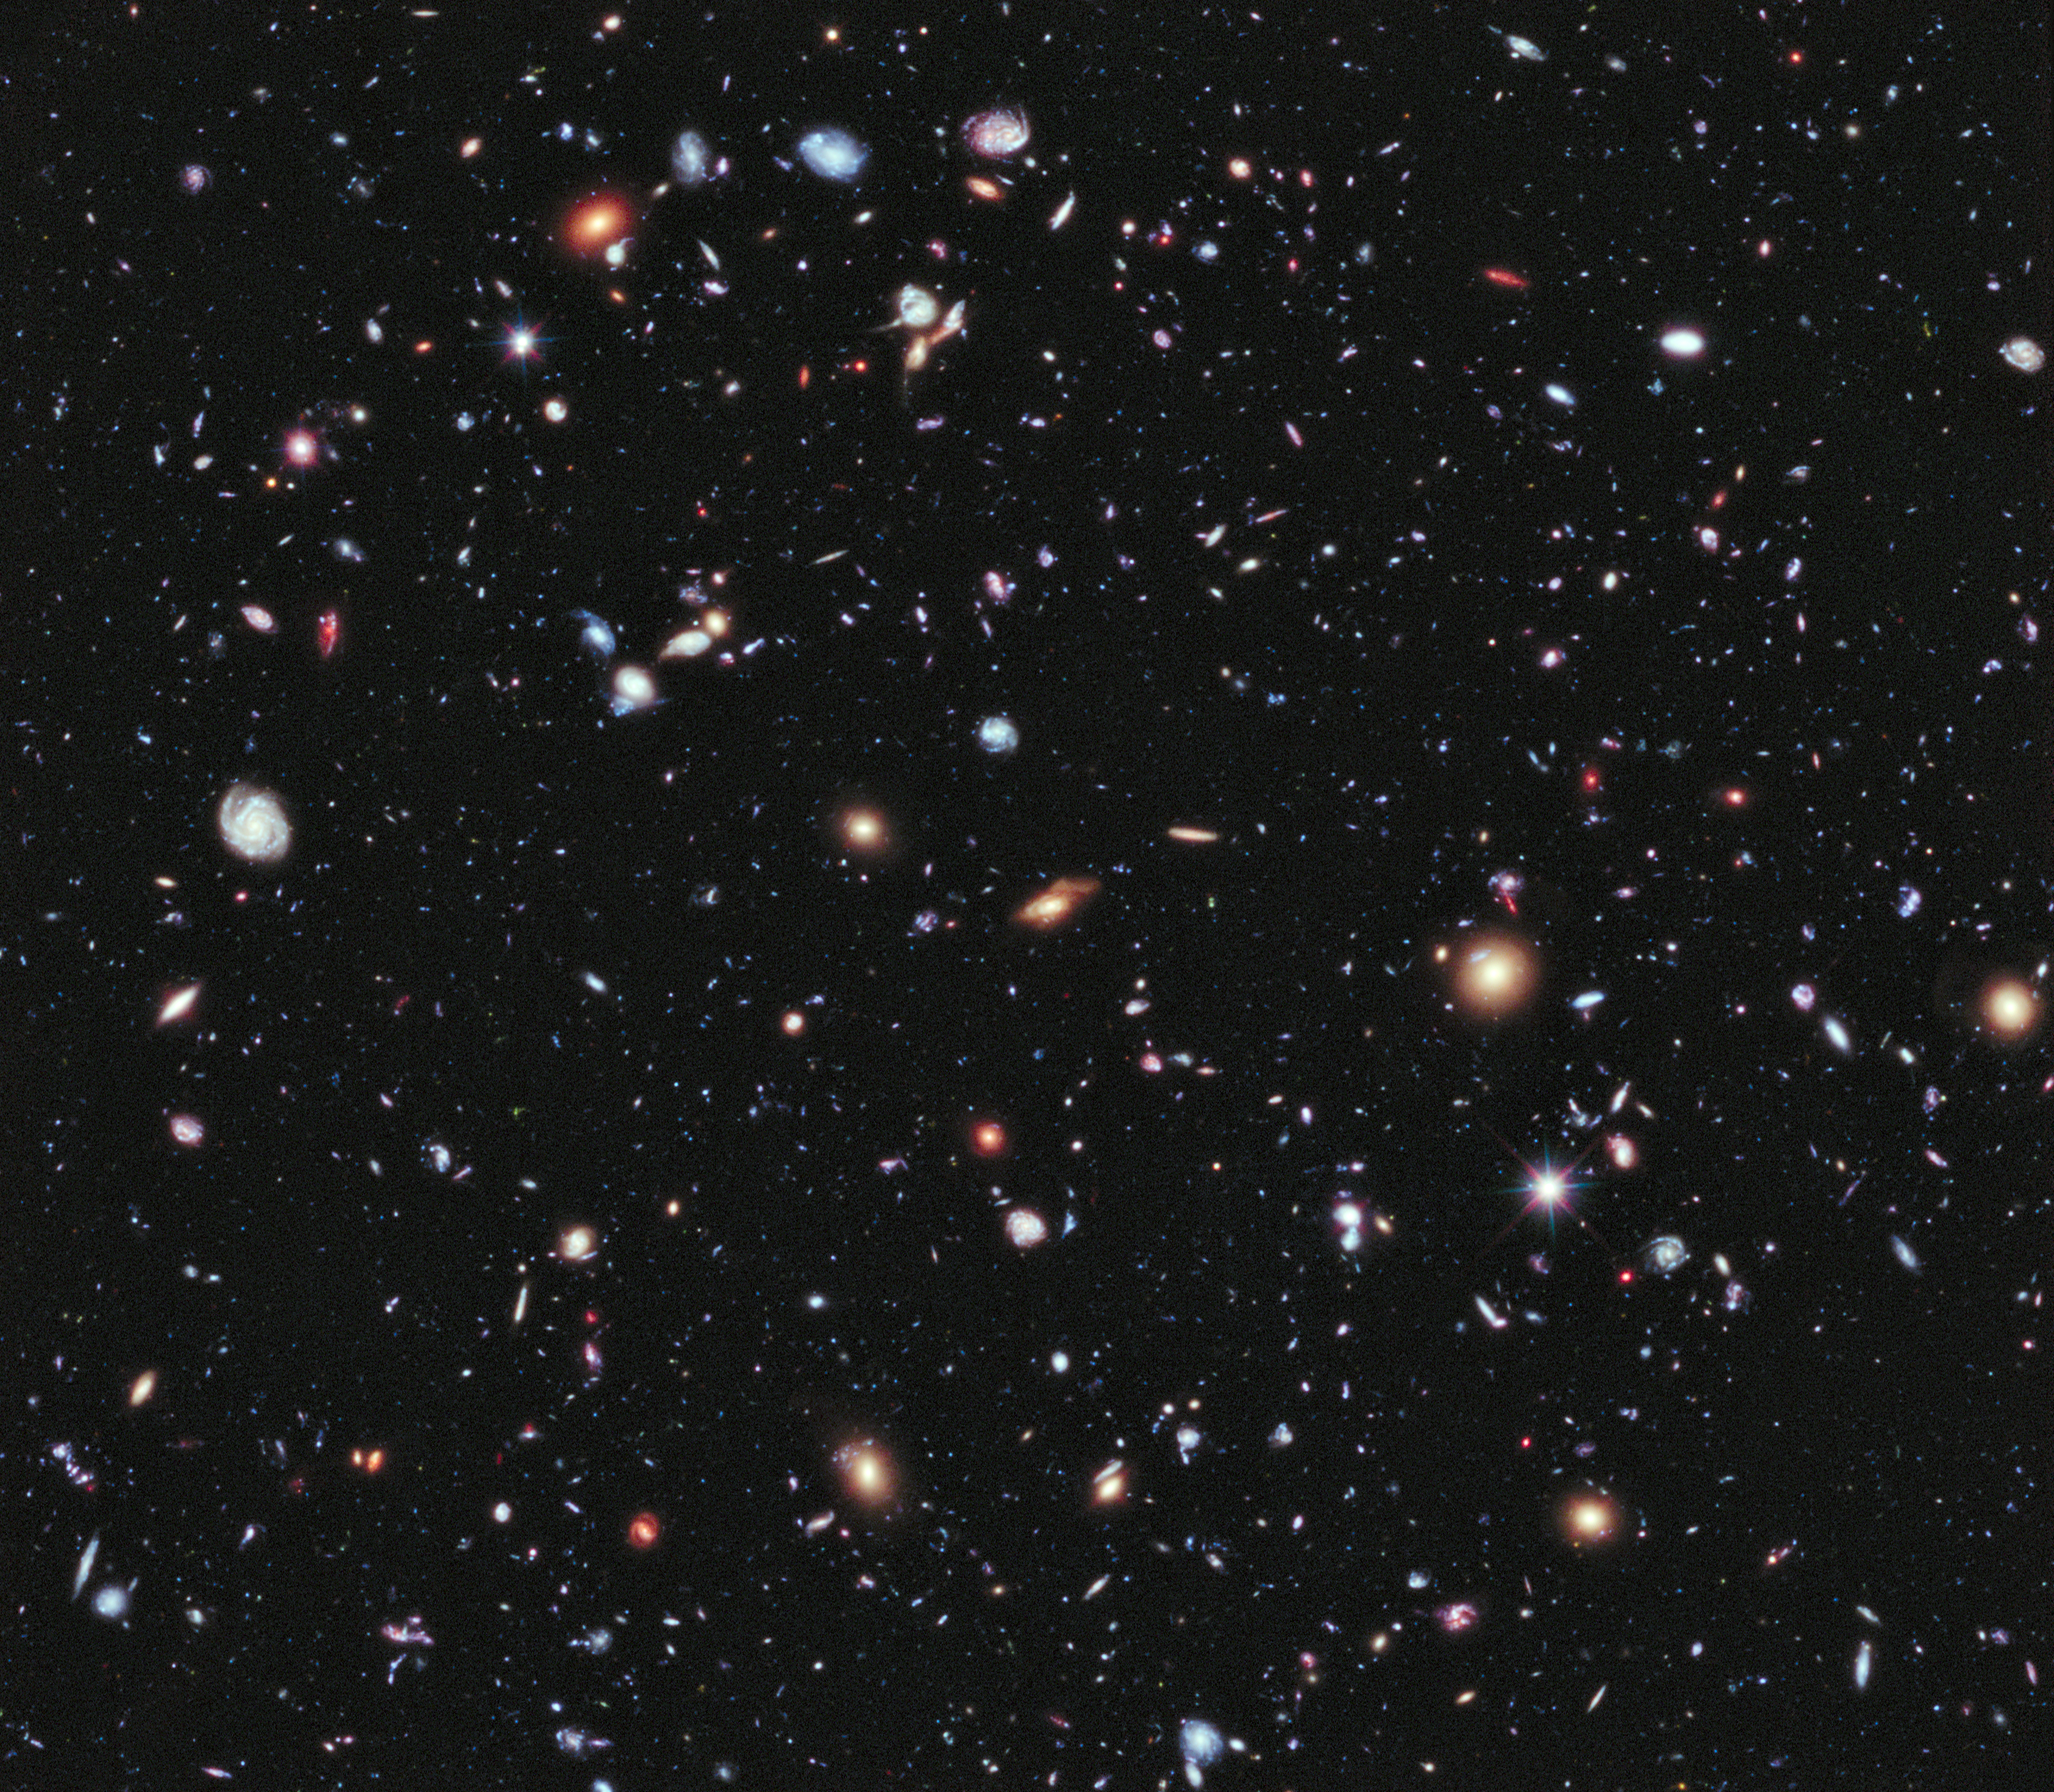 [Image: Hubble_Extreme_Deep_Field_%28full_resolution%29.png]